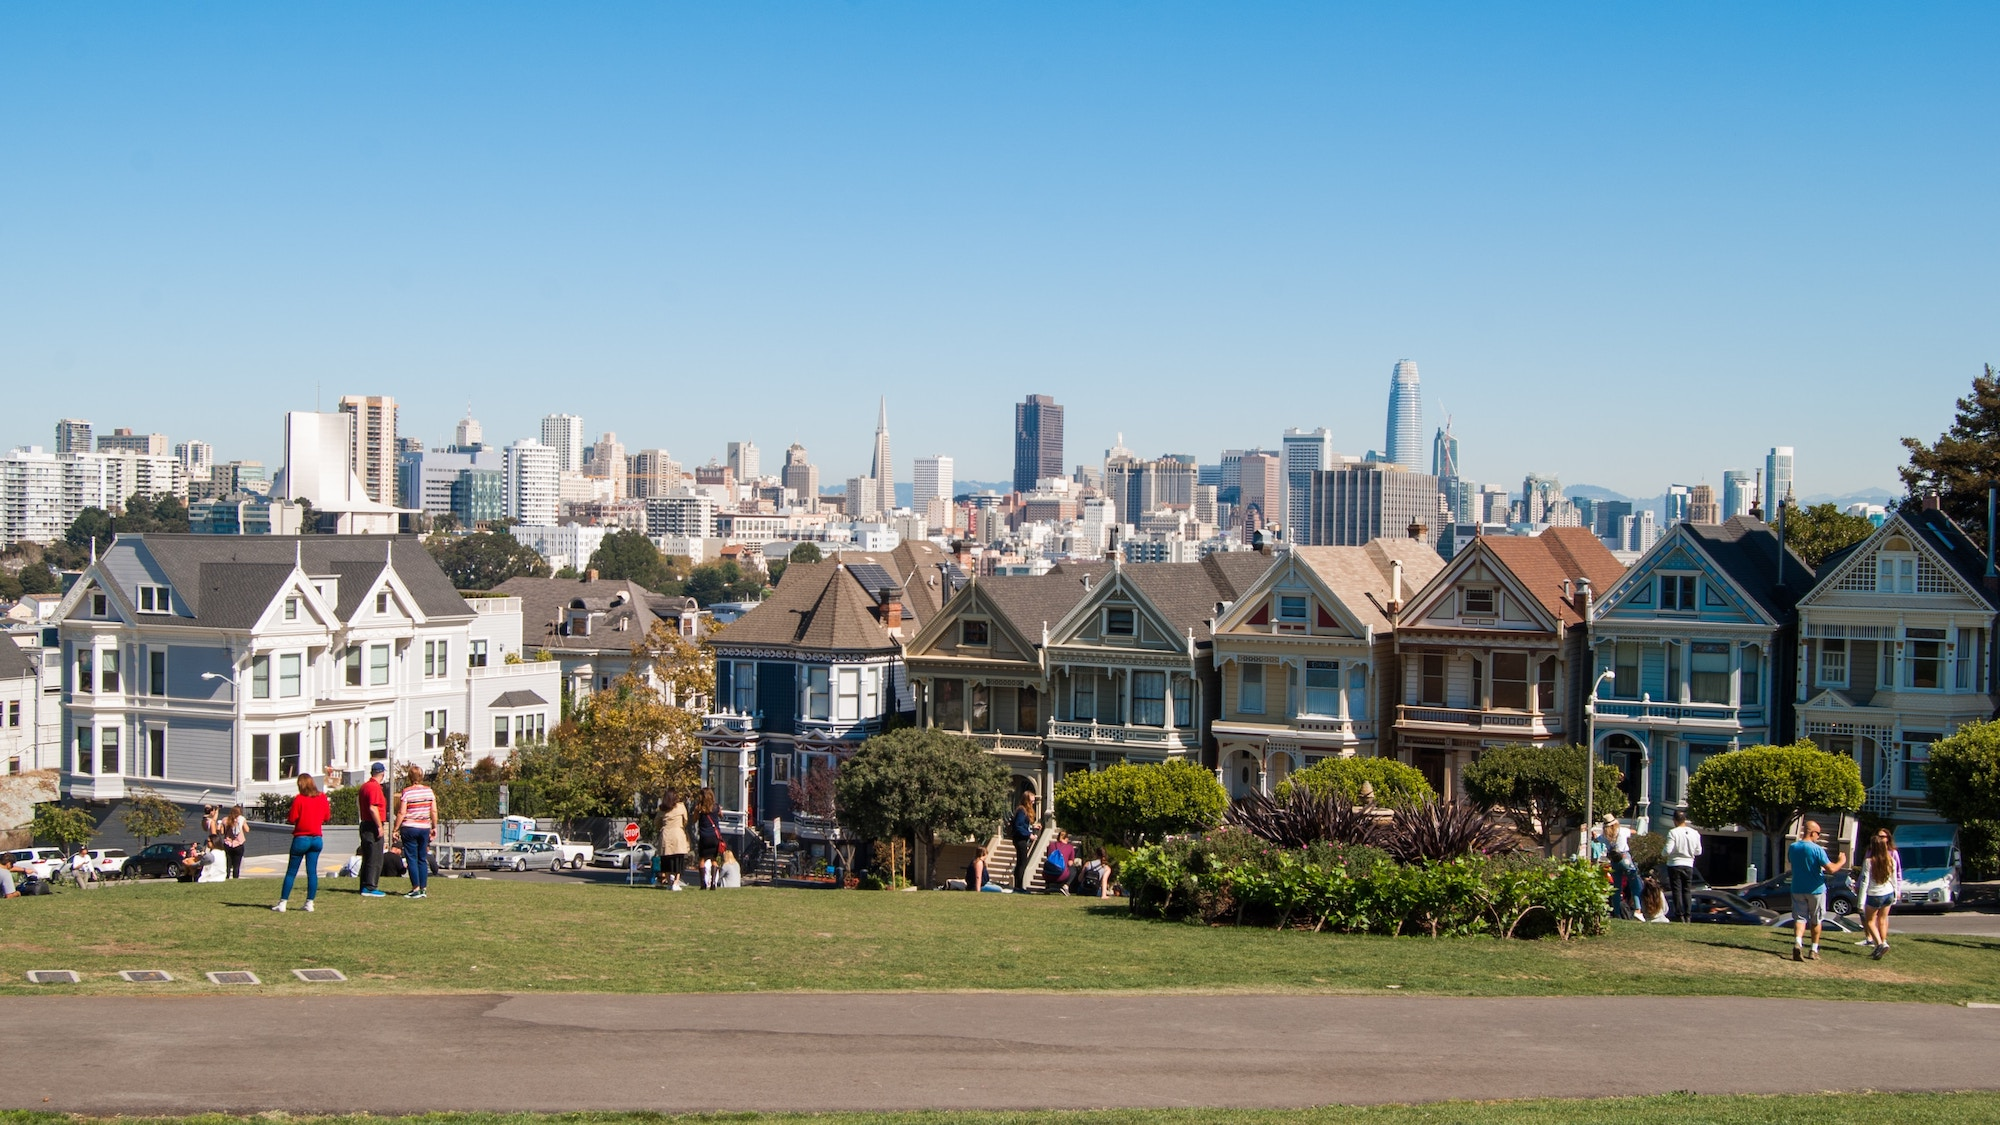 Scenic picture of the painted ladies in San Francisco as well as the Financial District in the background